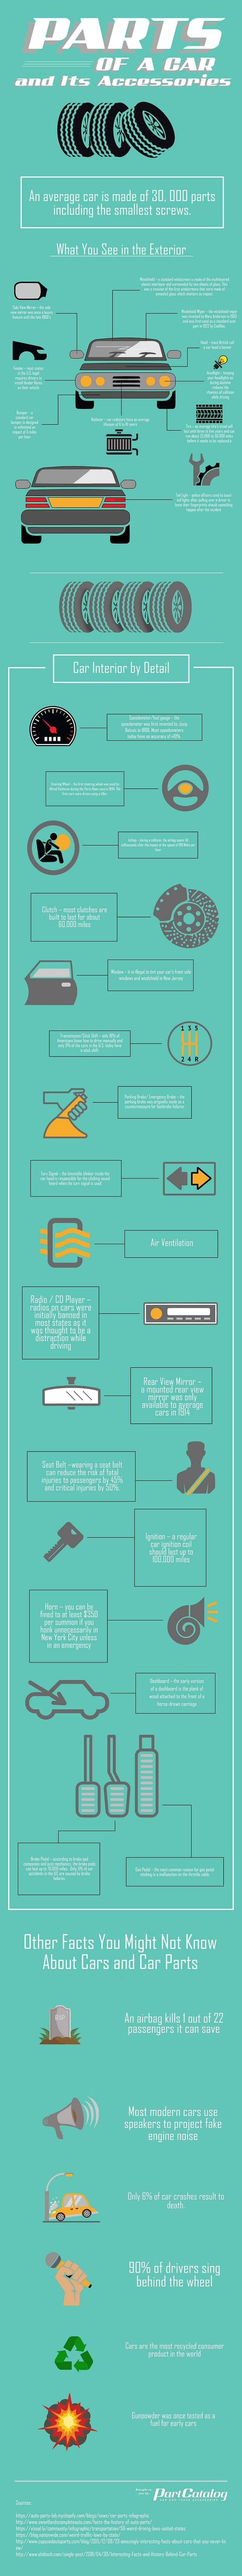 Ultimate Guide Car Parts and Accessories #infographic